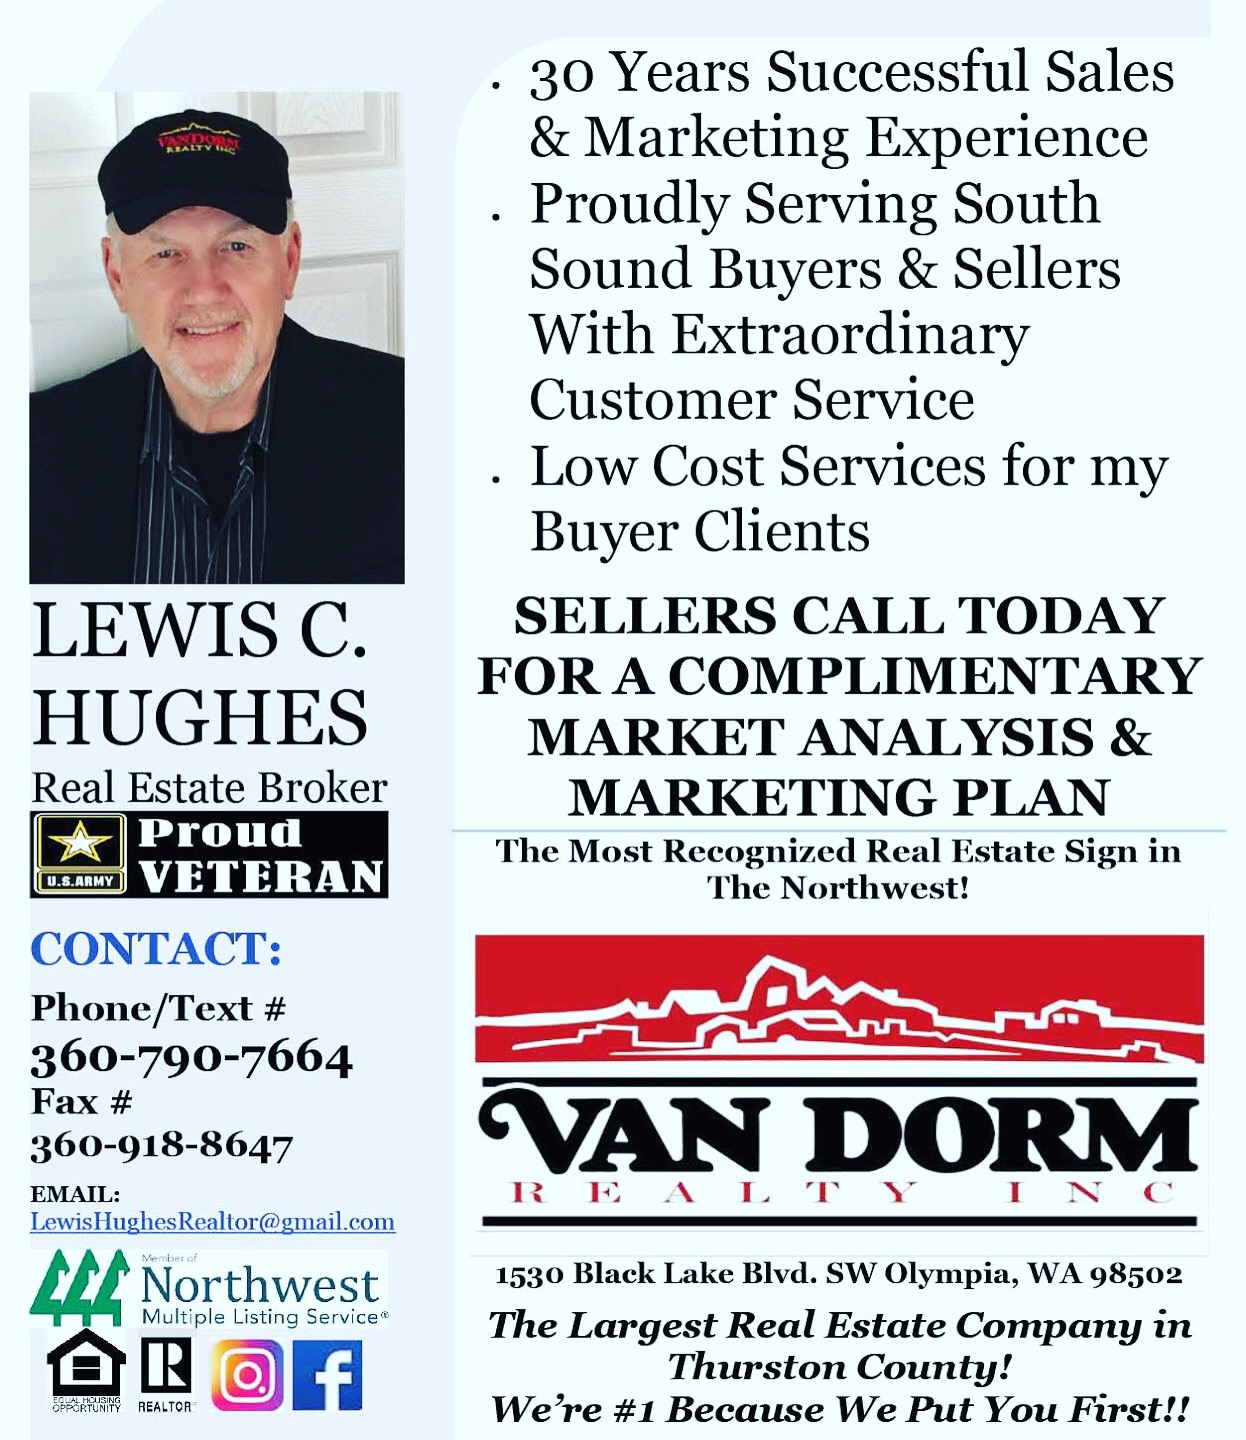 Lewis Hughes Your Premier Real Estate Agent @ Van Dorm Realty, Inc.